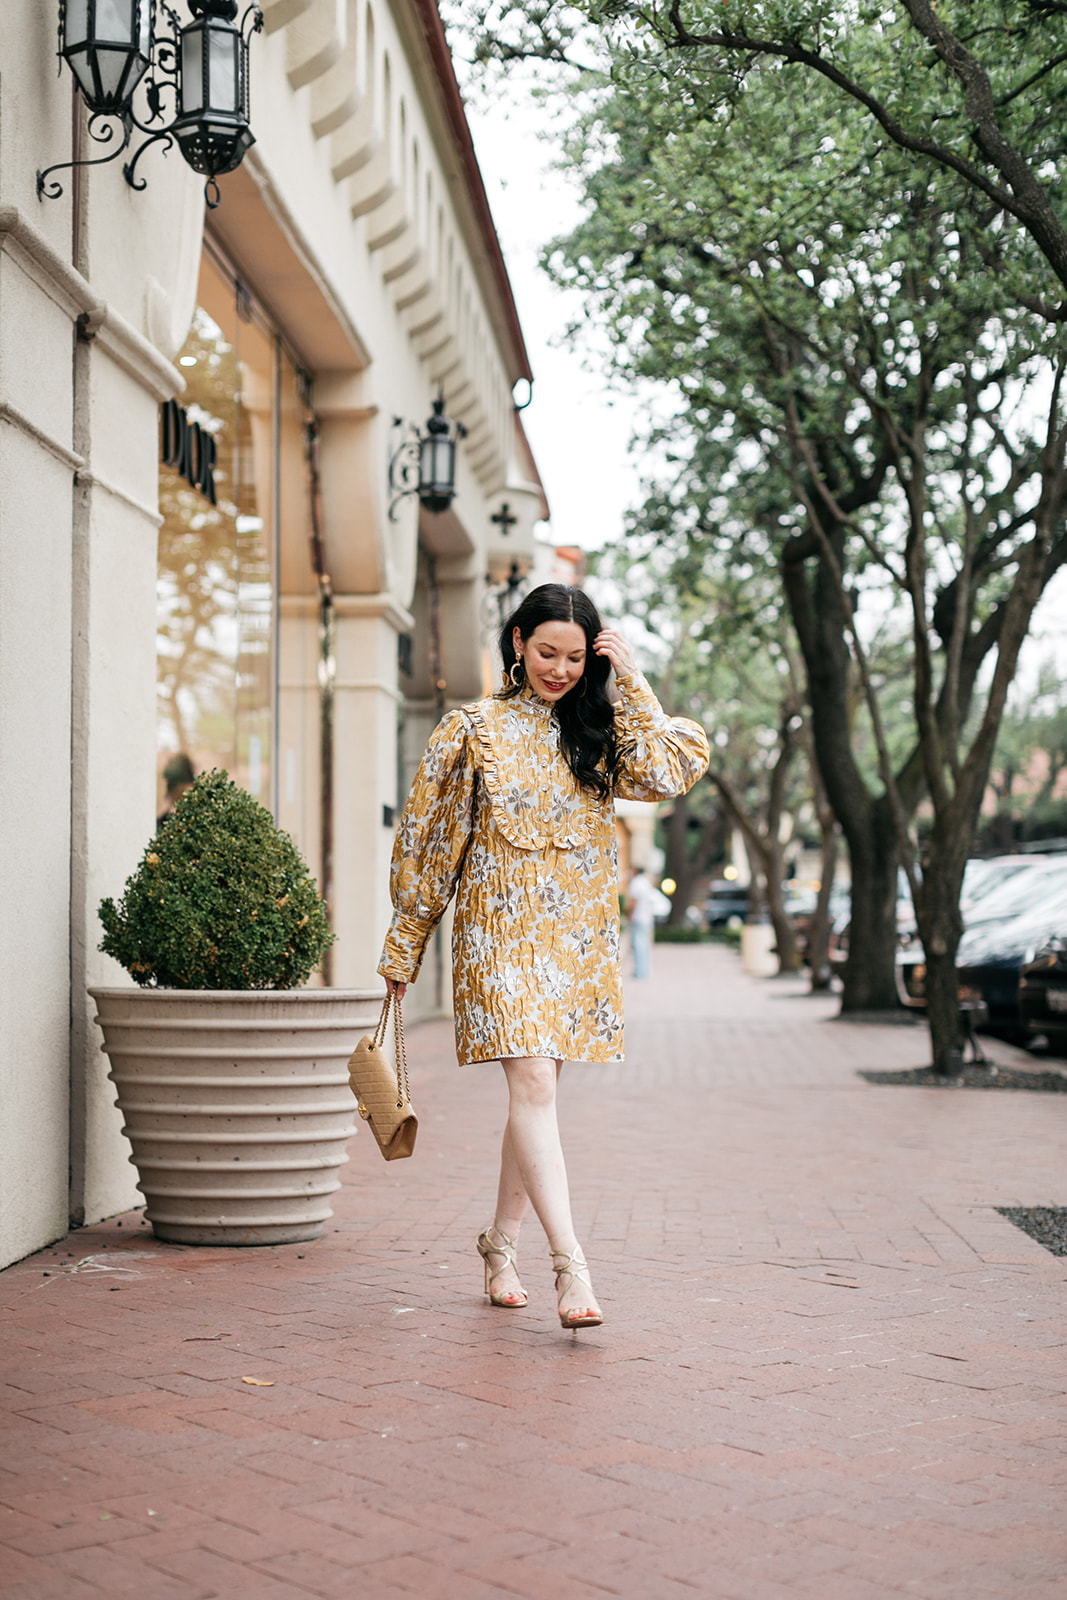 Sister Jane Cocktail Dress, Quilted Chanel Bag   Cocktail Dress by popular Dallas fashion blog, Pretty Little Shoppers: image of a woman walking outside on a brick paved sidewalk and wearing a Sister Jane Cocktail Dress, Chanel Bag, Jimmy Choo Sandals, and Ettika earrings.